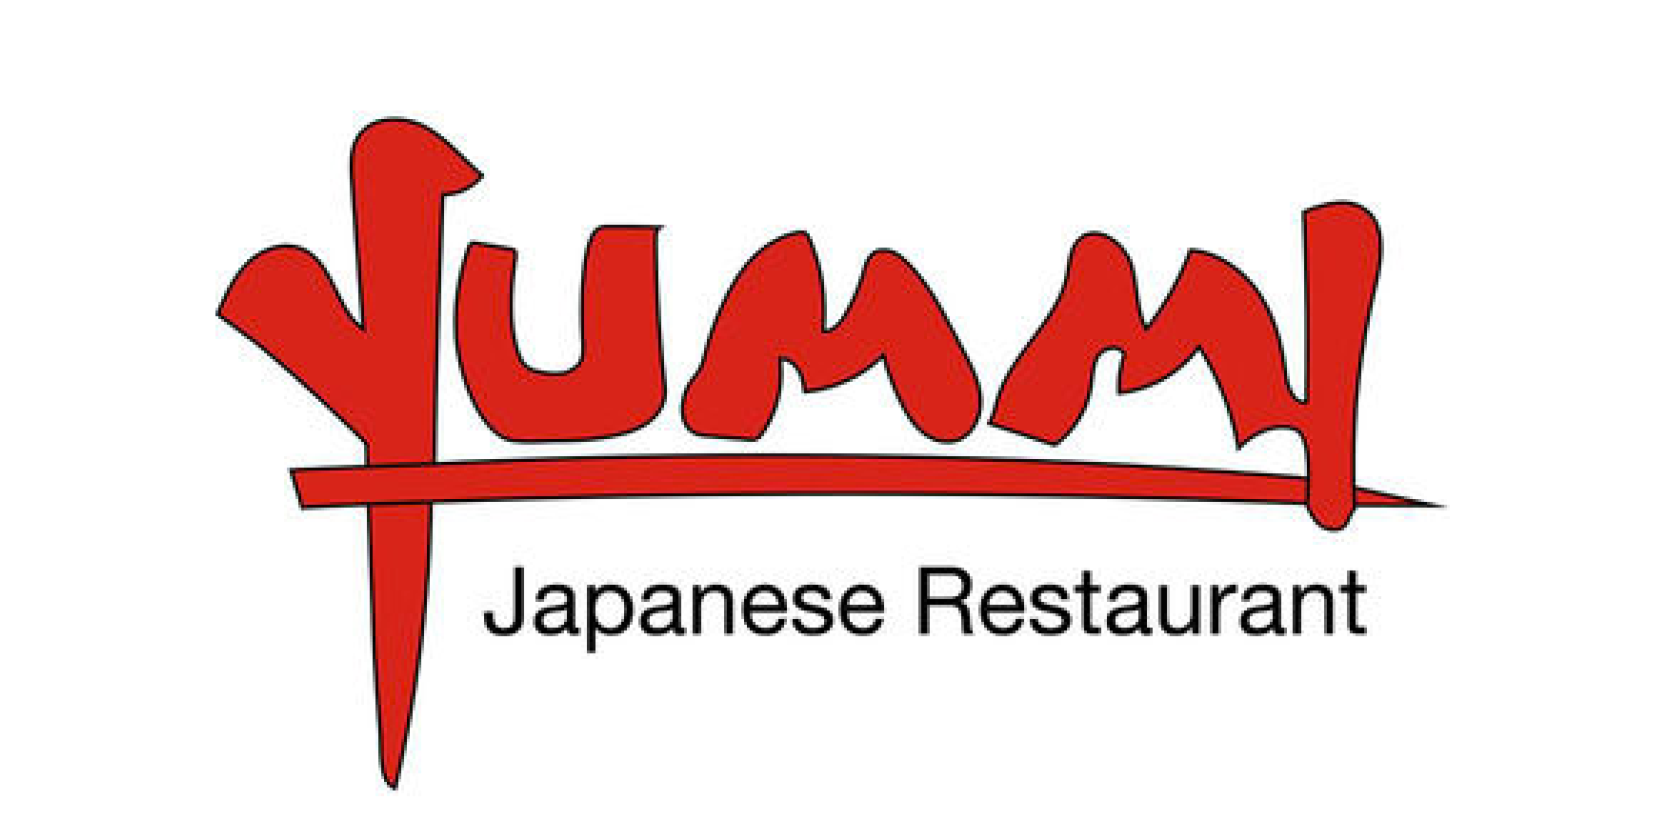 Yummi Japanese Restaurant    Address : 24165 I-10, San Antonio, TX 78257   Phone : (210) 698-1650   Web :  https://yummisushisa.com/